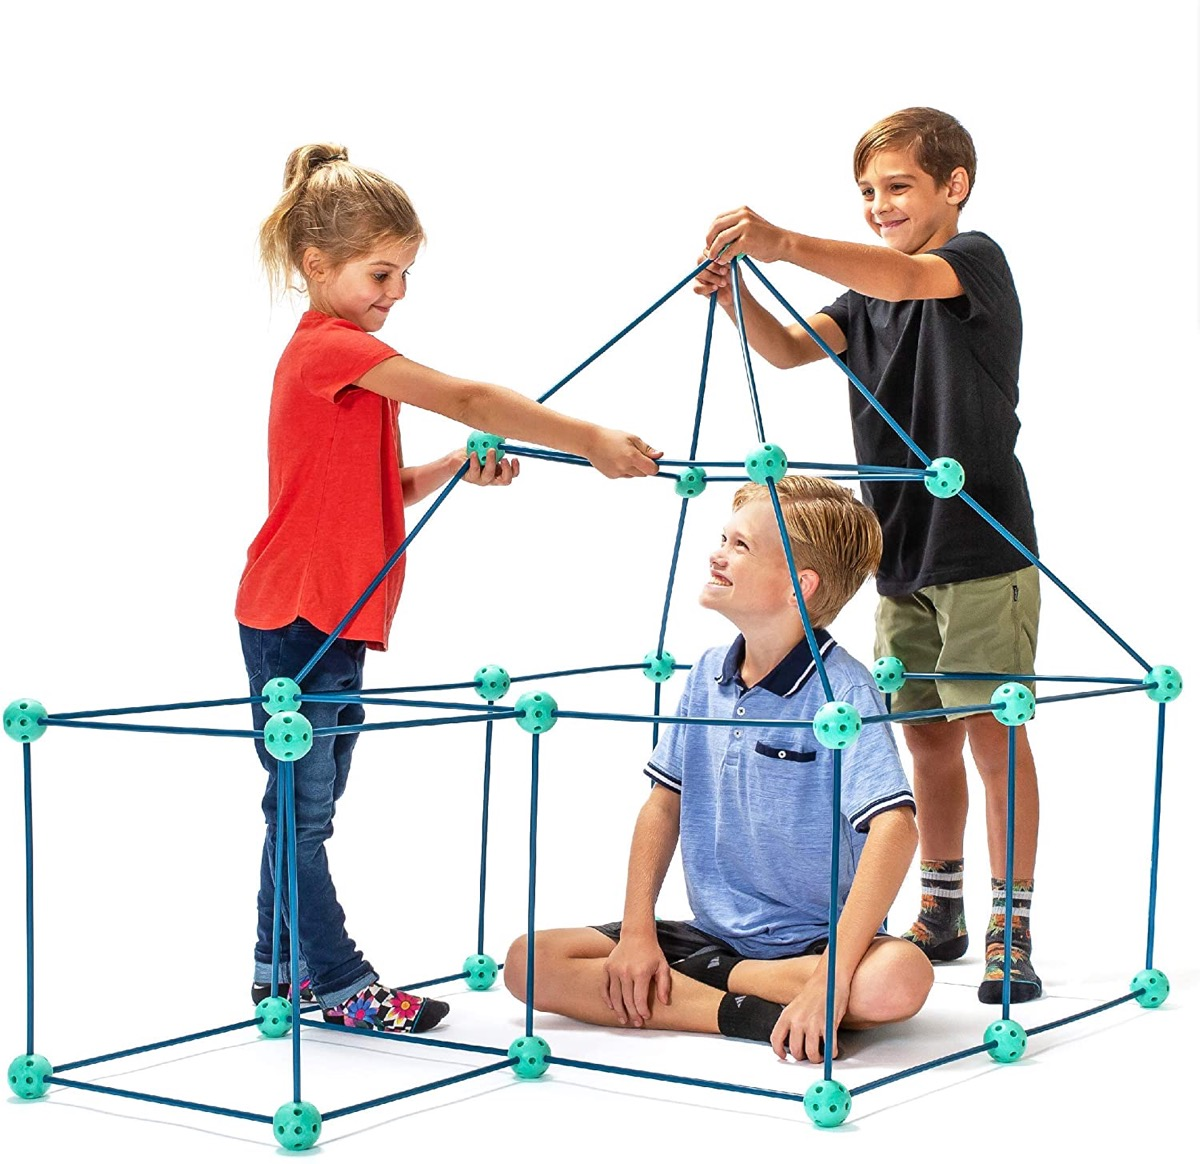 children building fort with green pieces